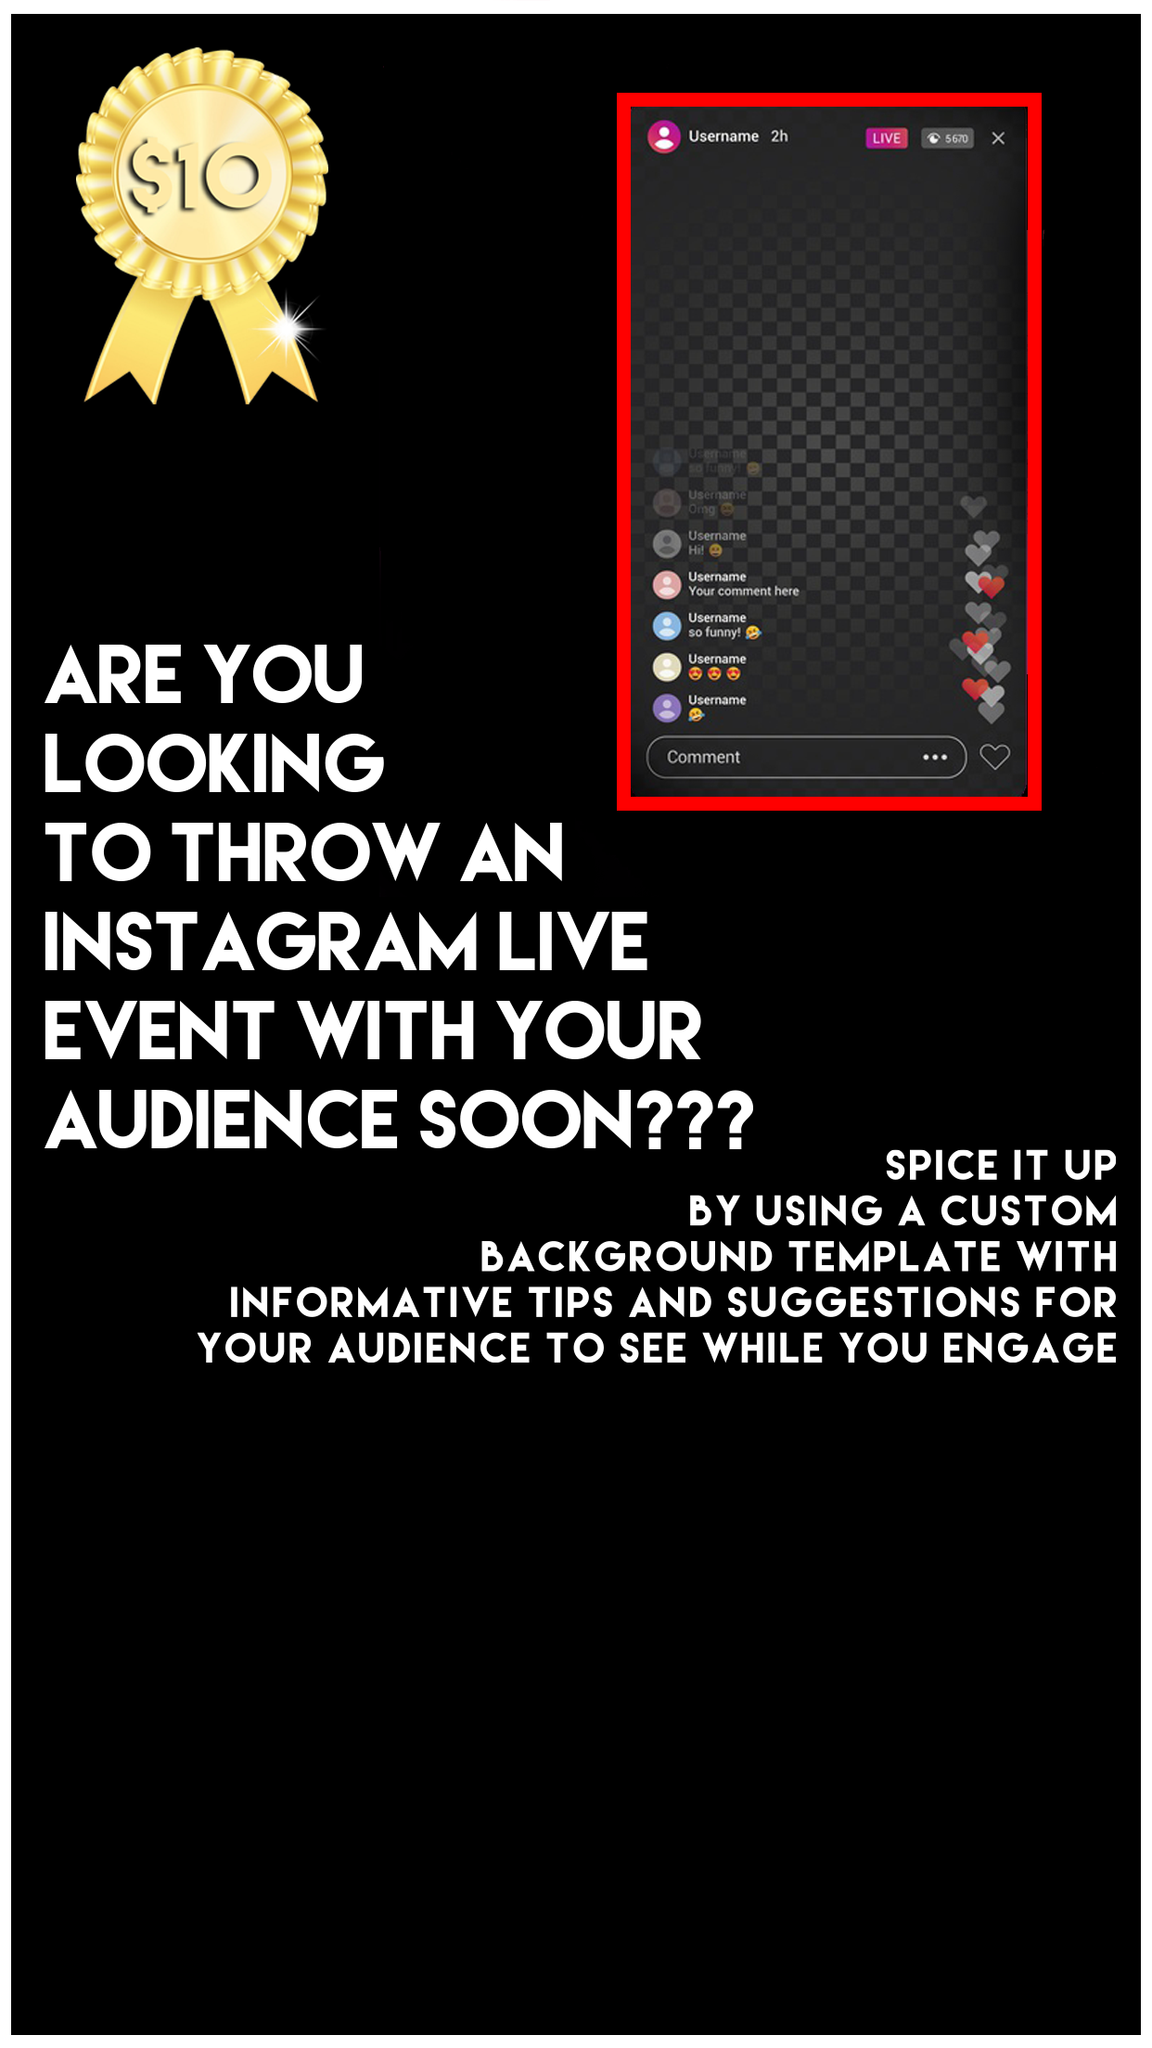 Instgram Live Event Background Template